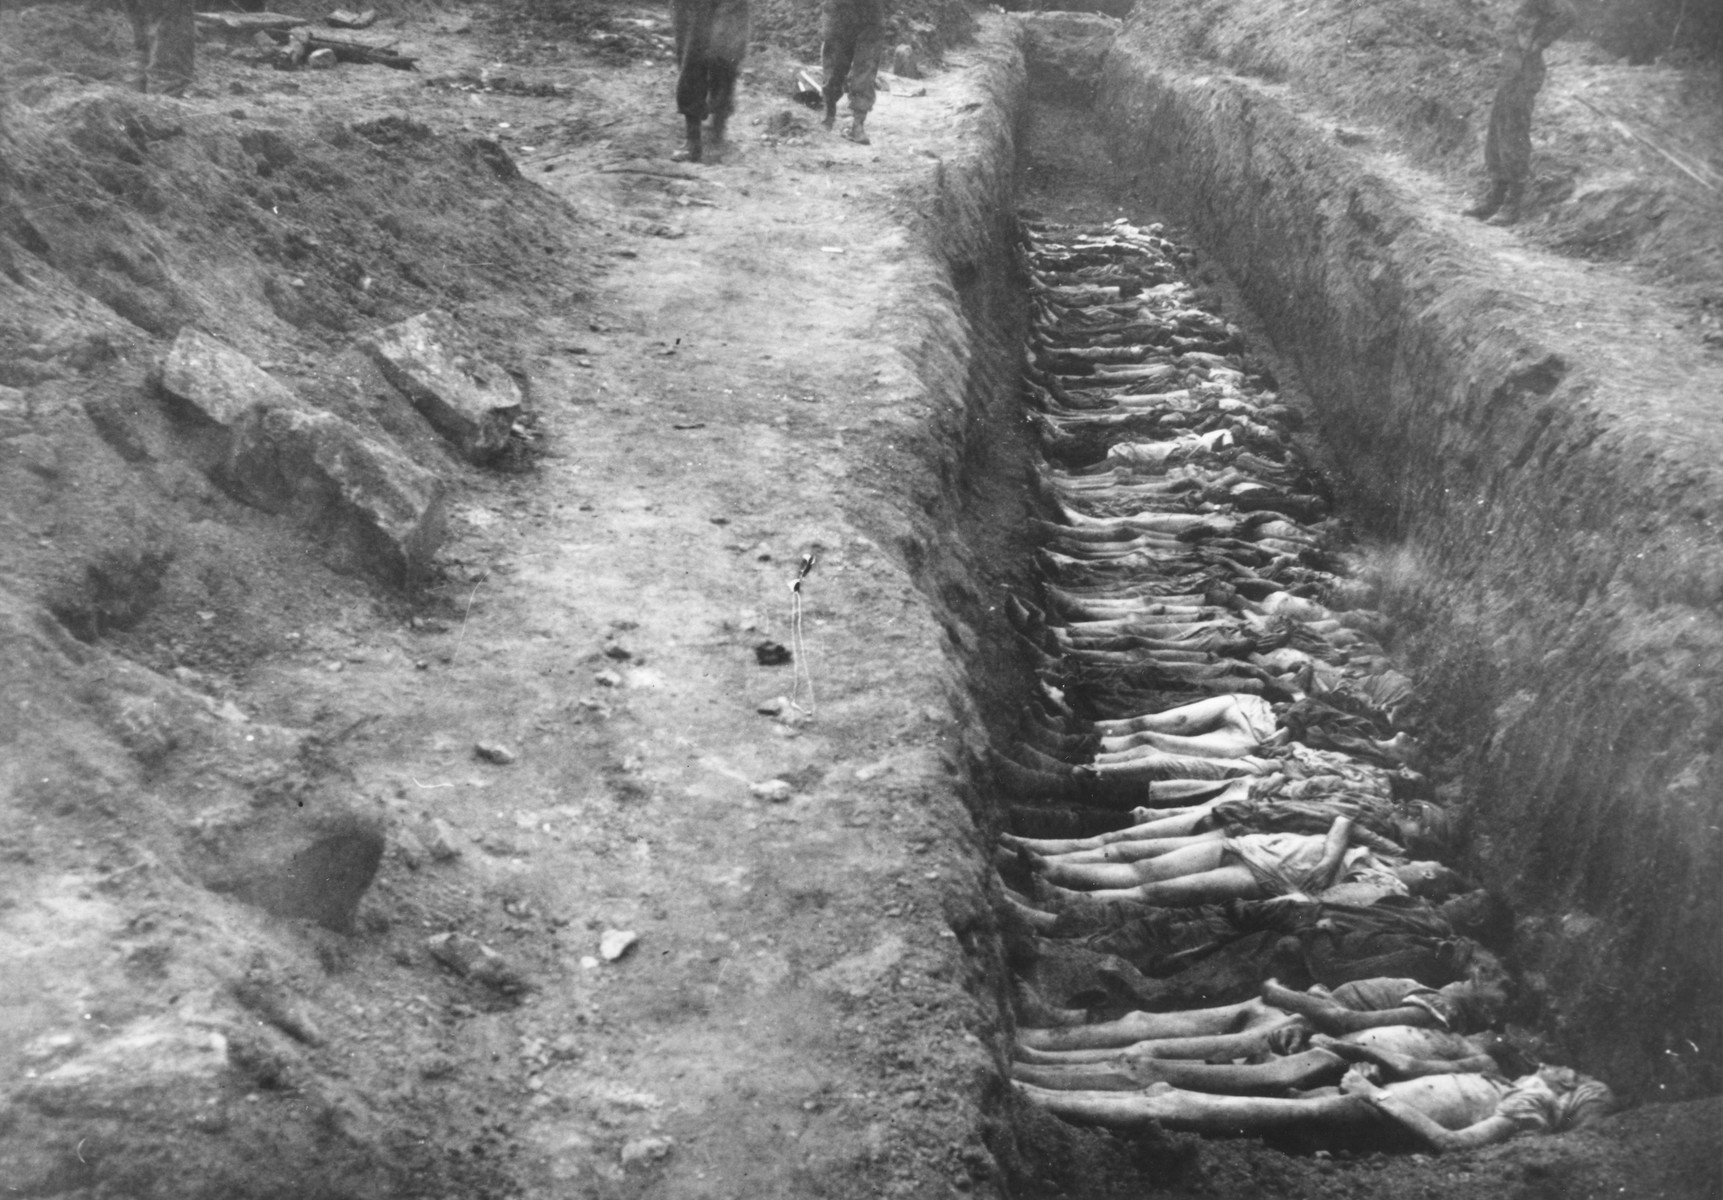 Prisoners' bodies laid out in a mass grave.